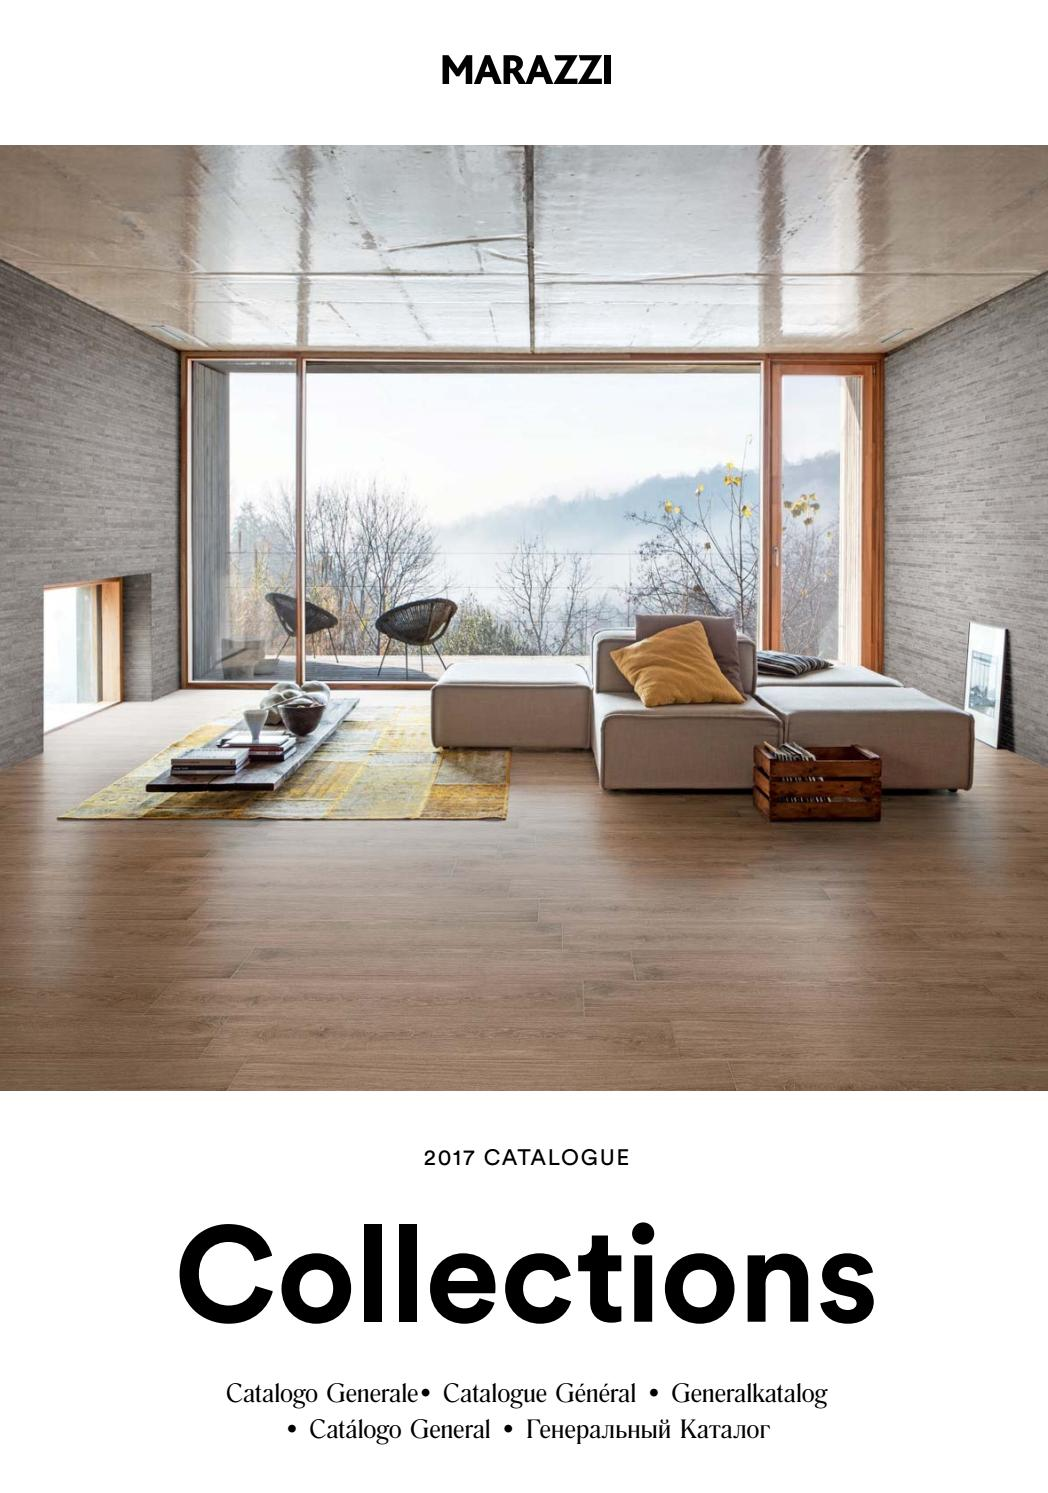 Posa Piastrelle 30X60 A Correre marazzi - collections 2017 by dexterton - issuu